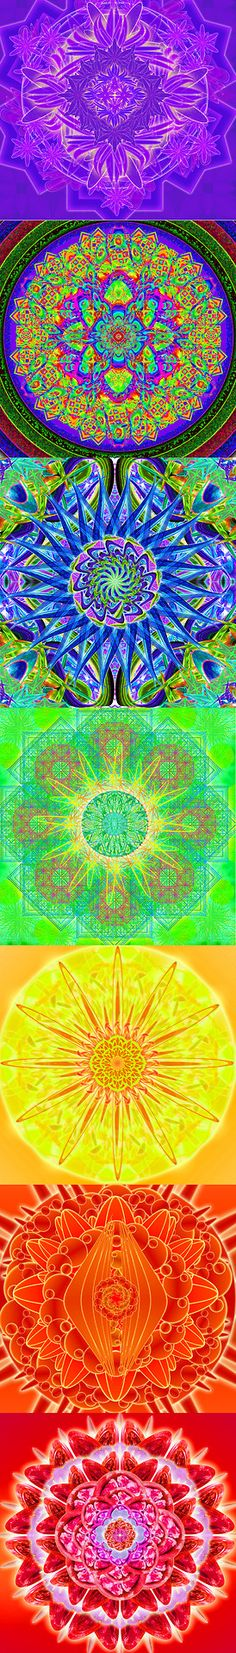 7 Chakra Mandala to Heal all your Chakras